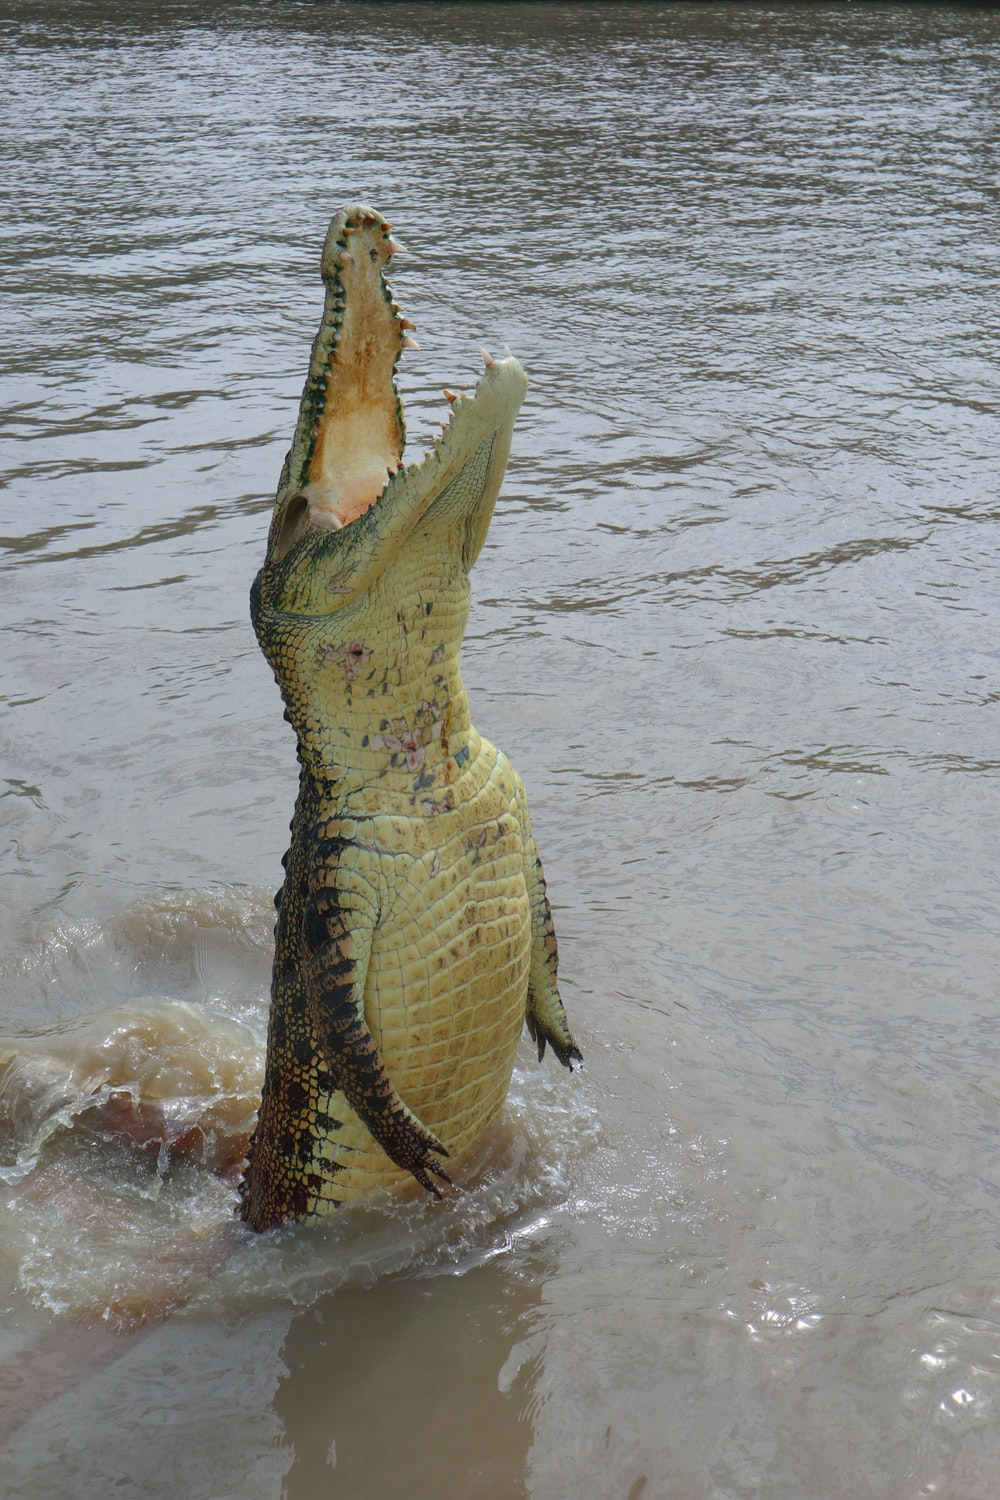 brown alligator on body of water